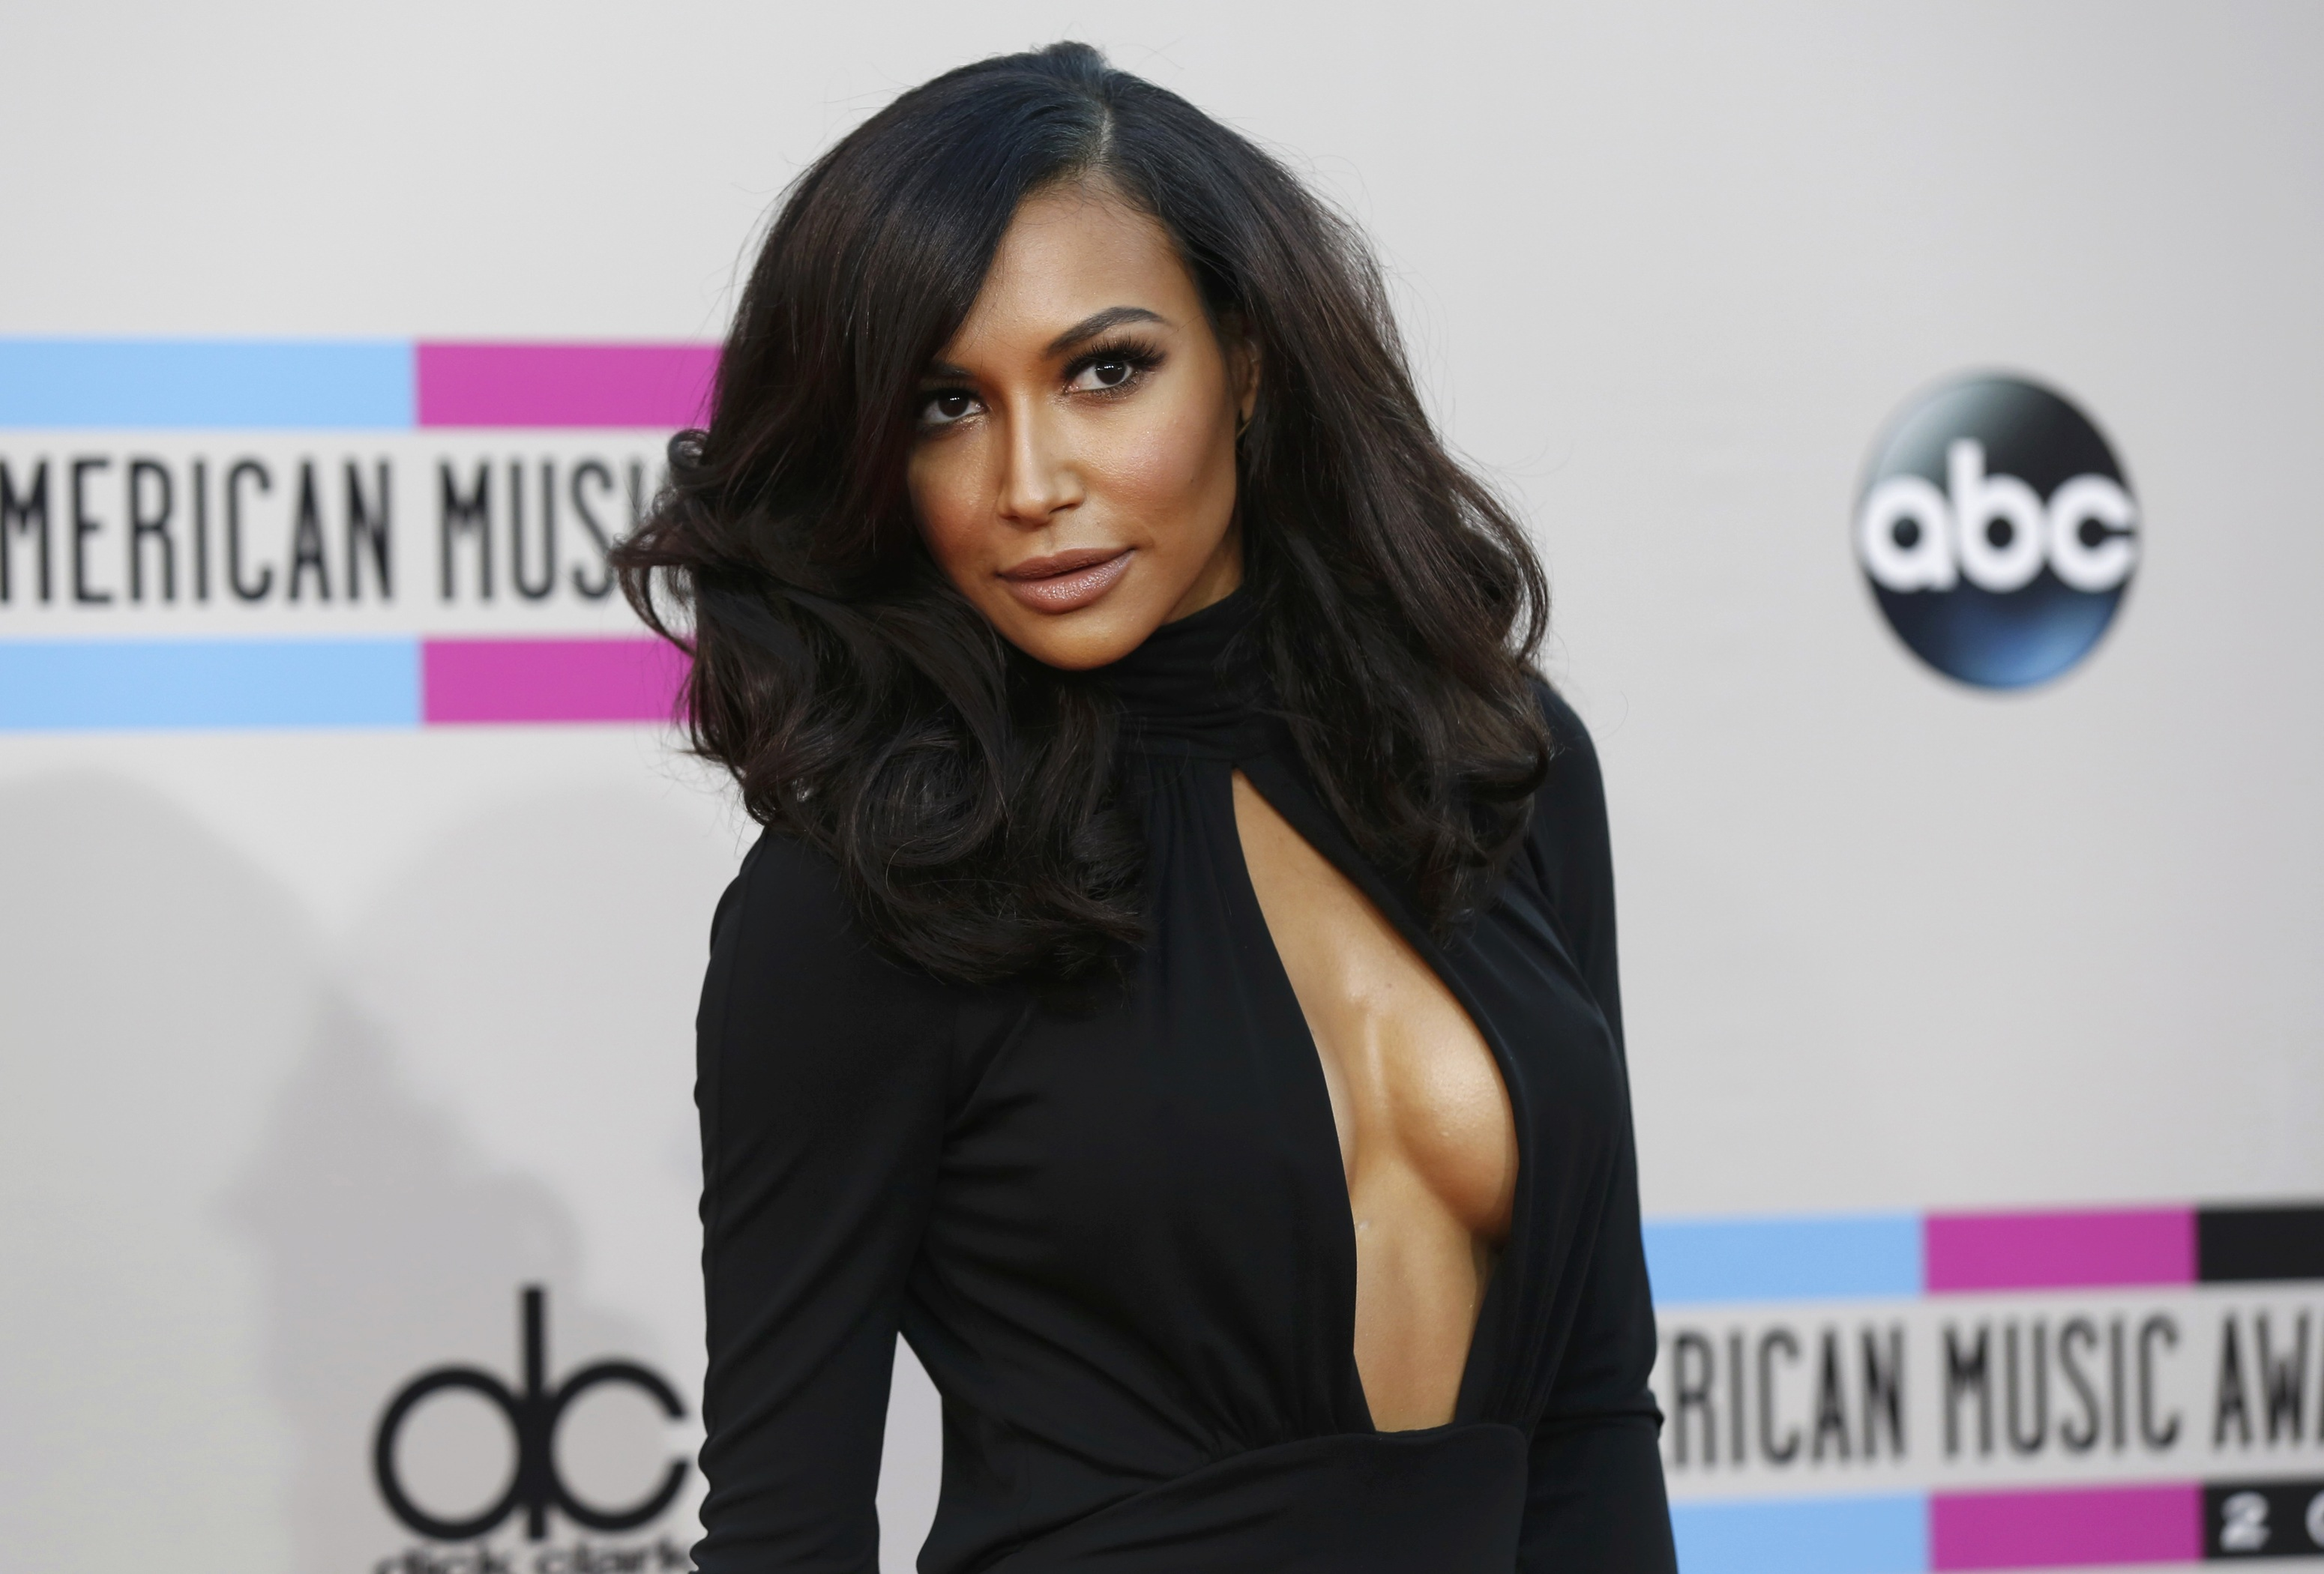 Actress Naya Rivera poses as she arrives at the 41st American Music Awards in Los Angeles